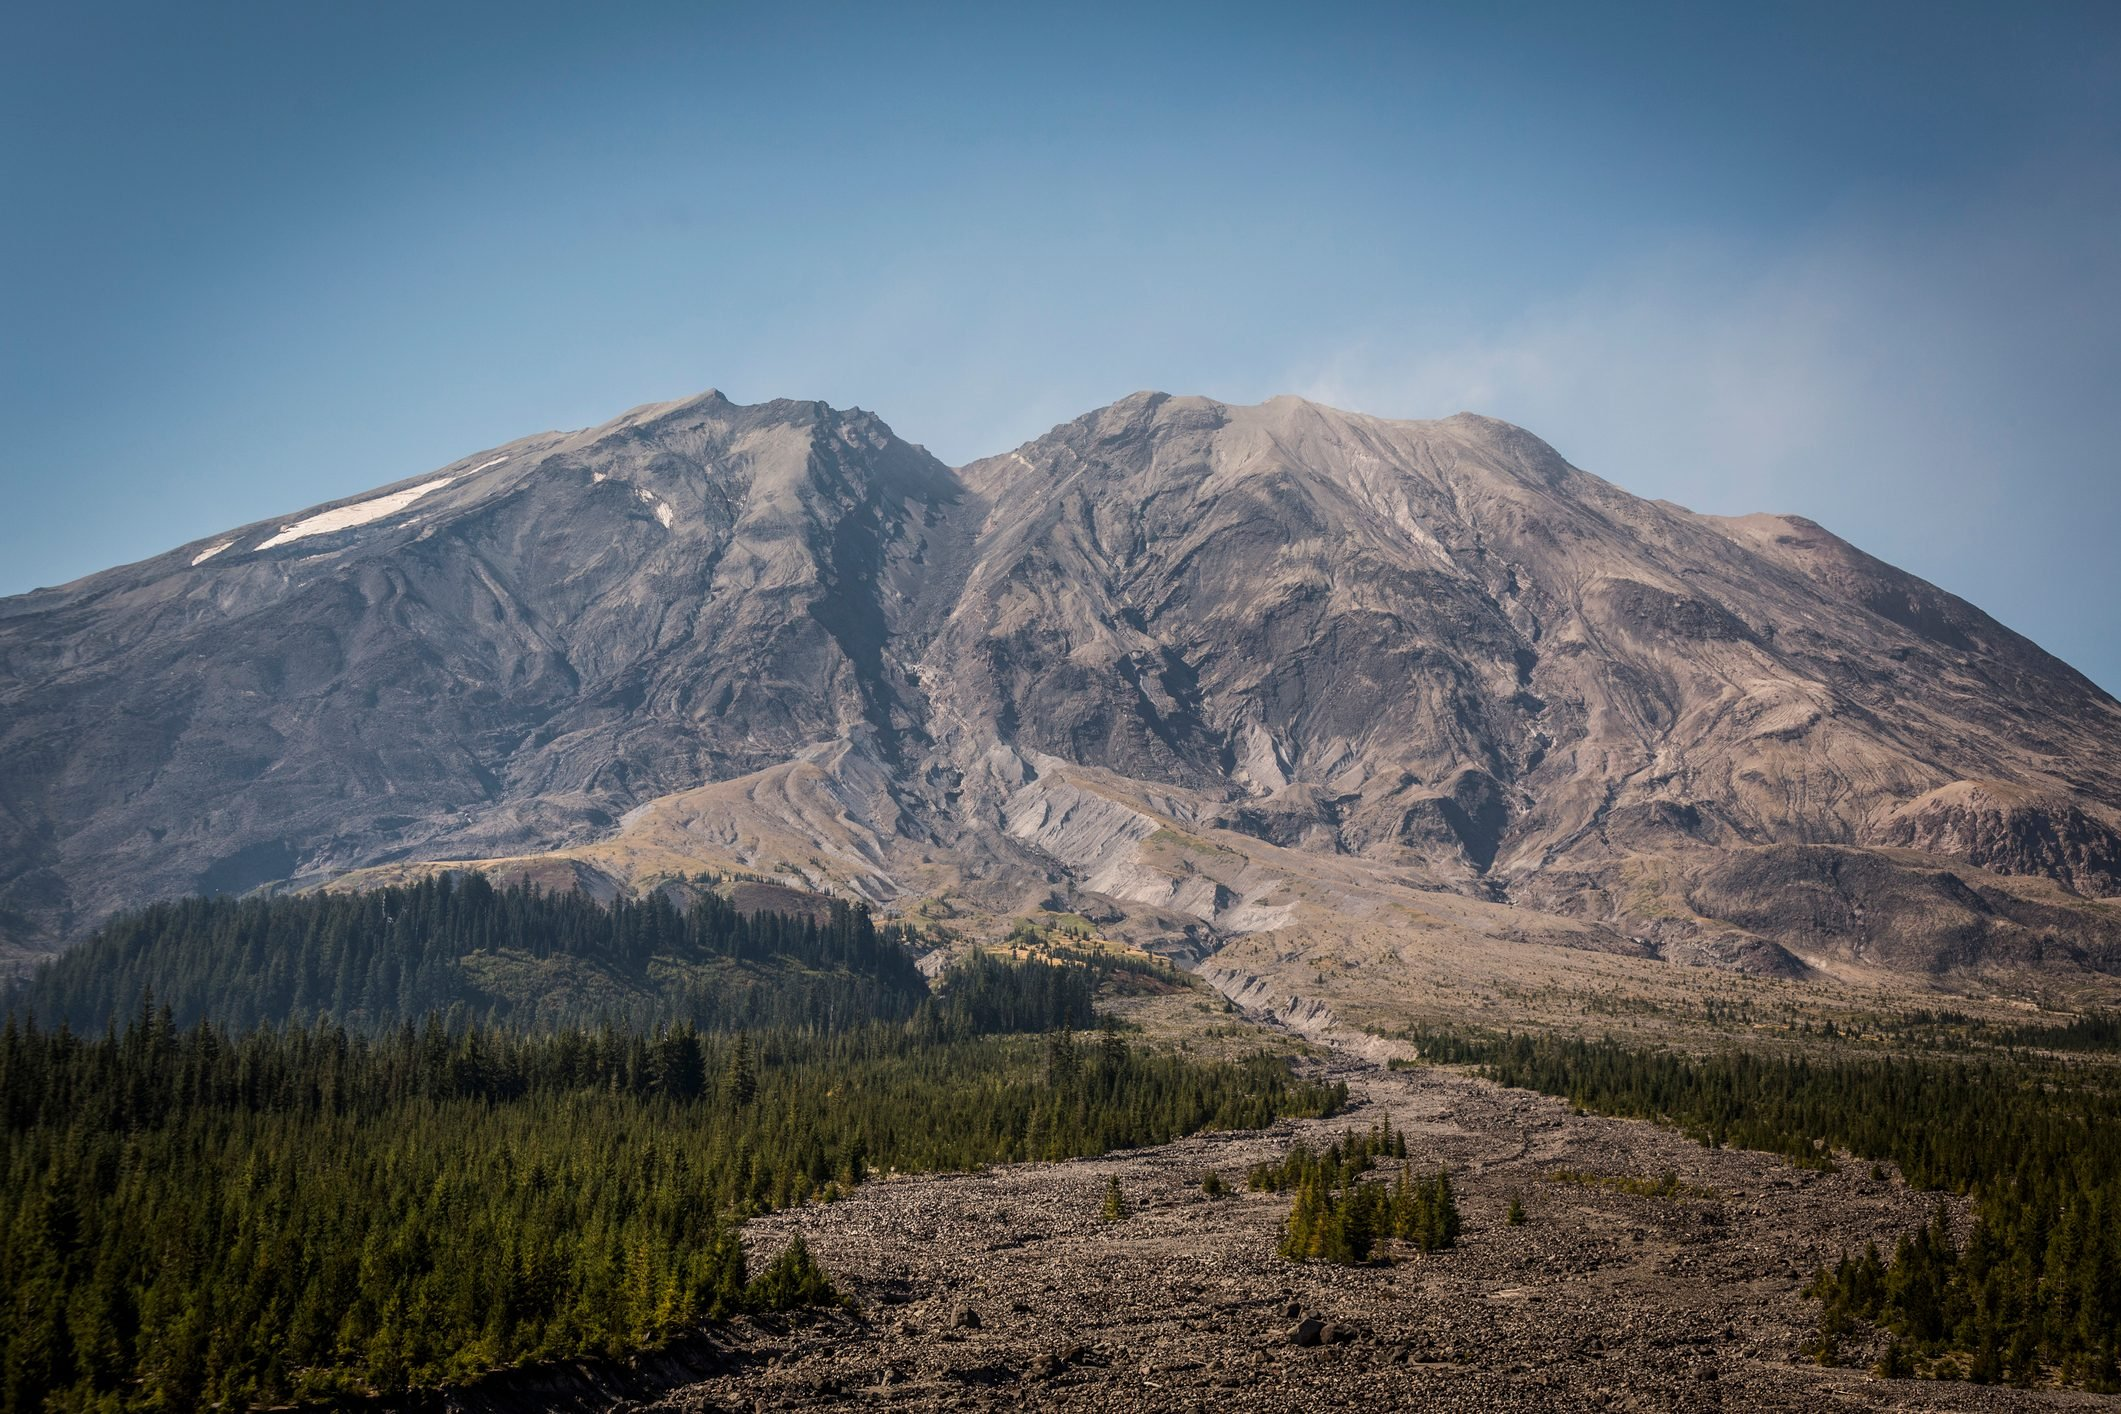 Mount St. Helens as View from Ape Canyon Trail, Washington, USA